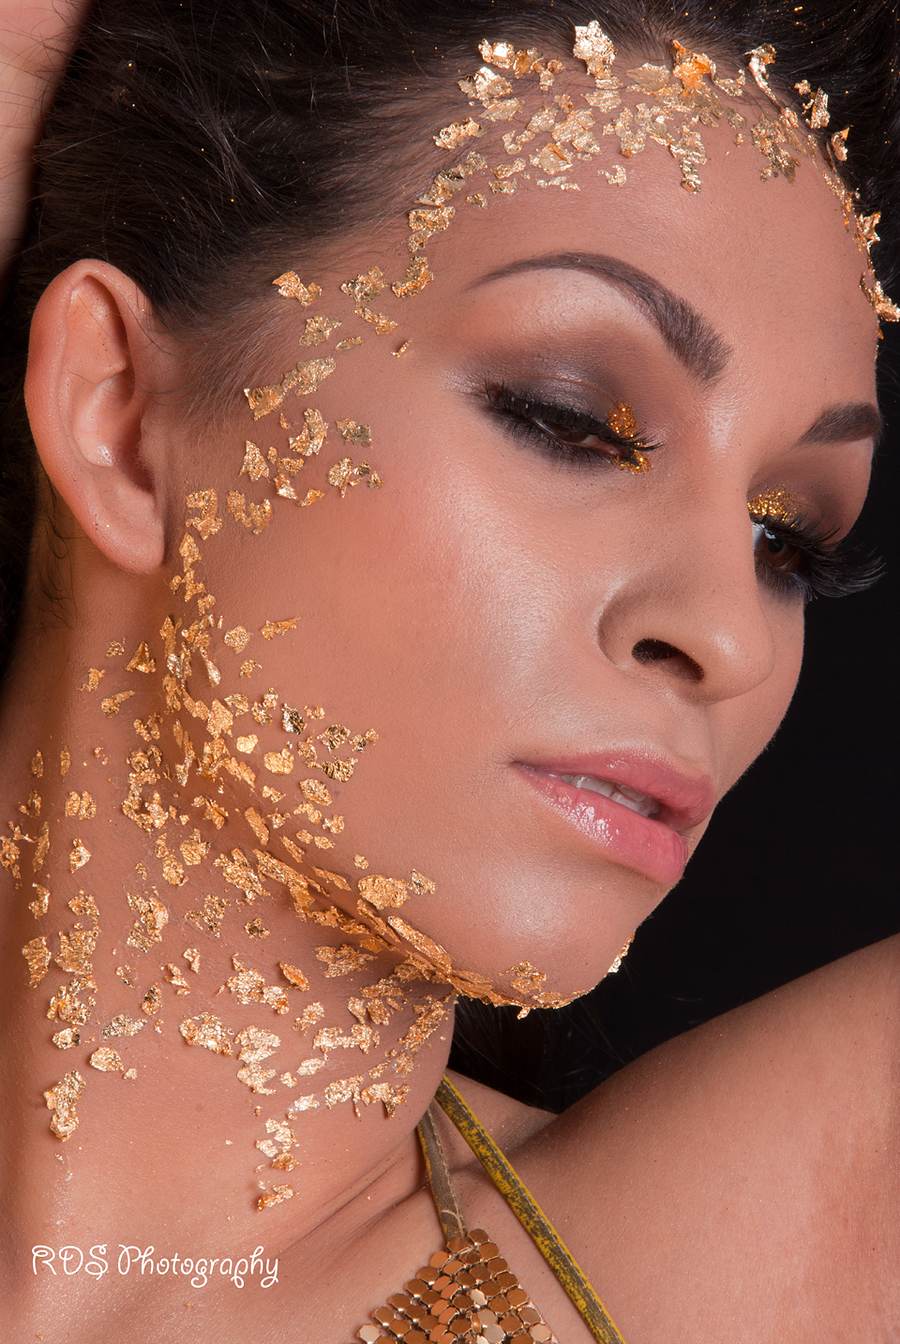 Pure gold / Photography by RDS Photography / Uploaded 29th January 2014 @ 03:53 AM